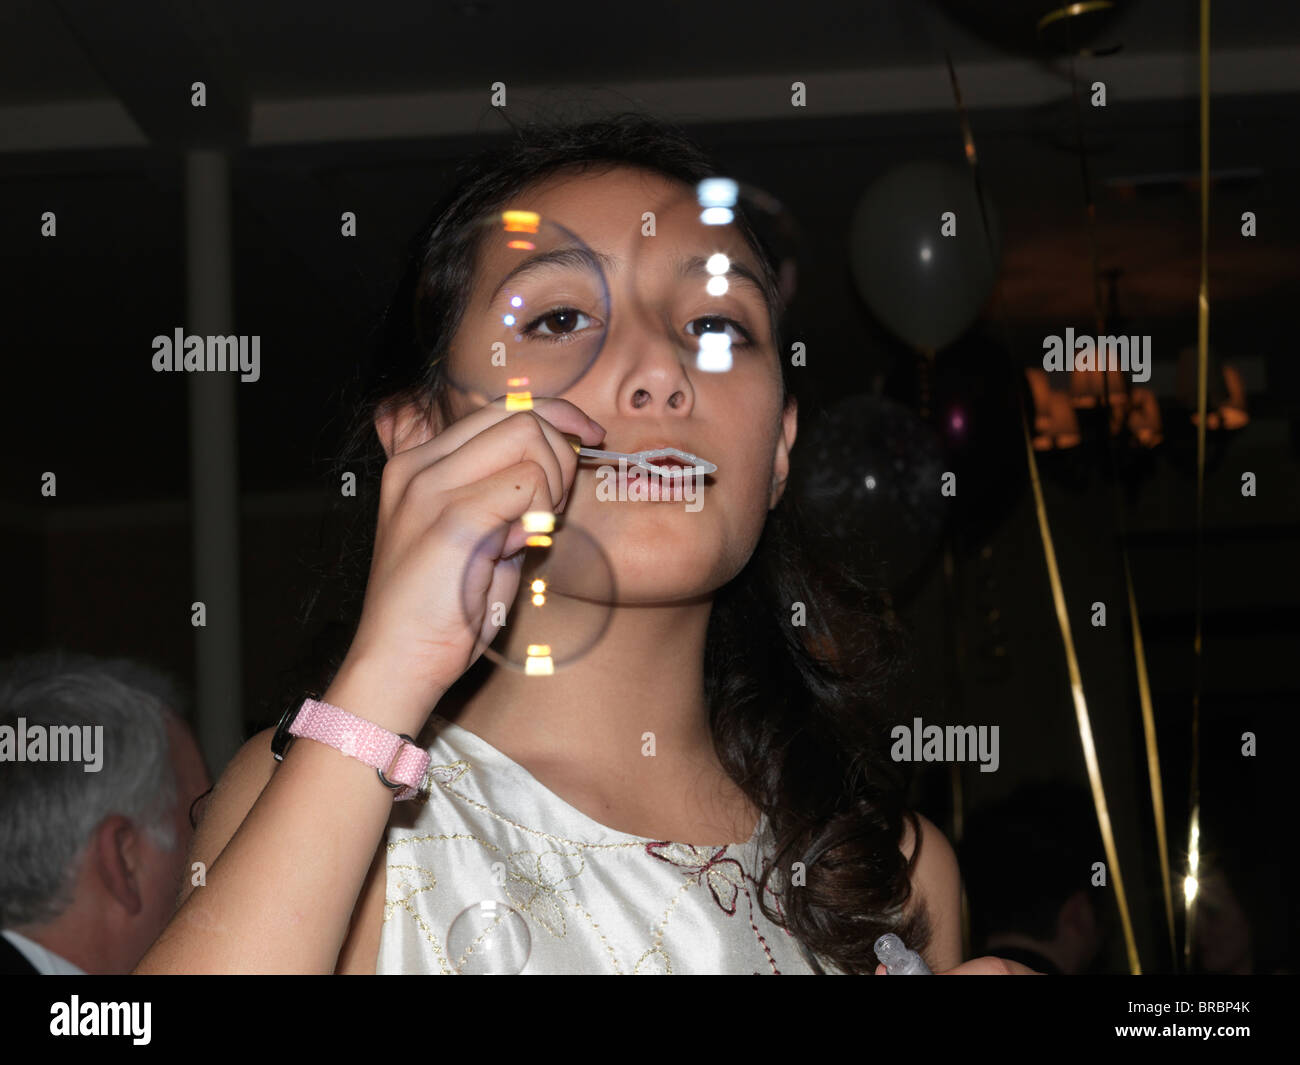 12 Year Old Girl Blowing Bubbles At A Wedding Stock Photo 31606307